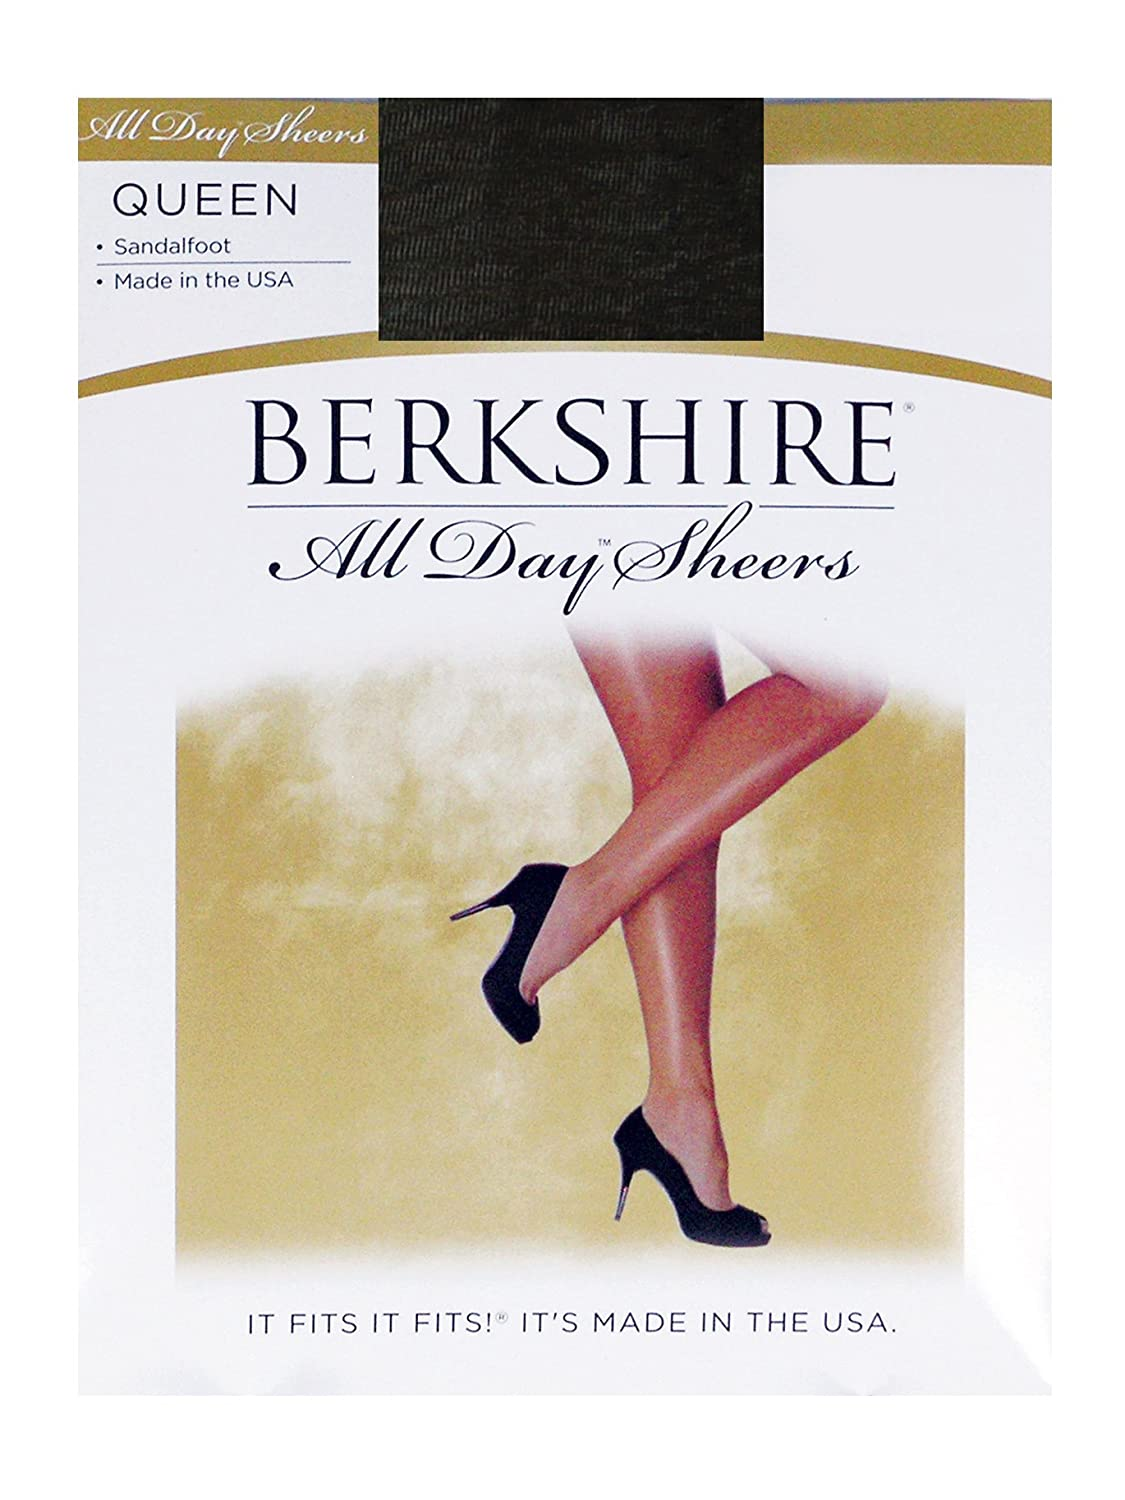 Berkshire Womens Plus-Size Queen All Day Sheer Non-Control Top Pantyhose Sandalfoot 4416